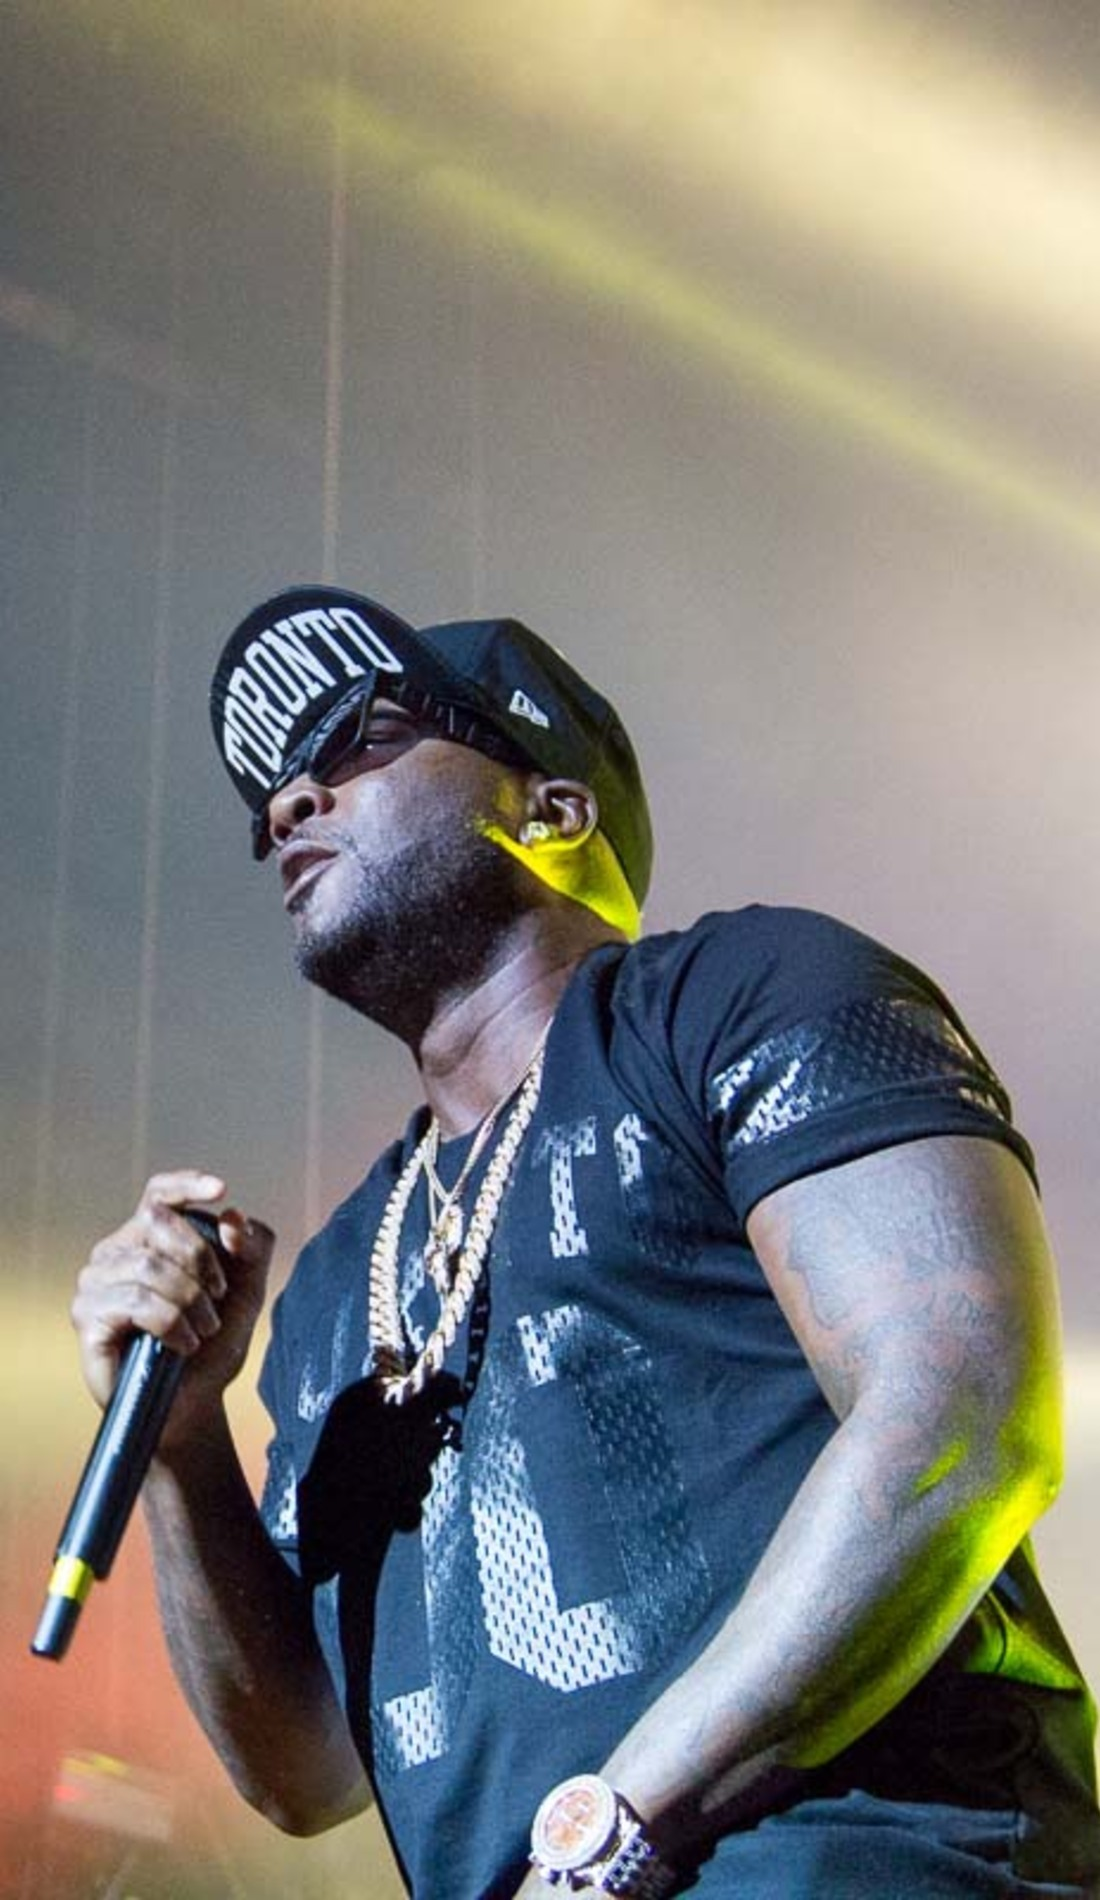 A Young Jeezy live event